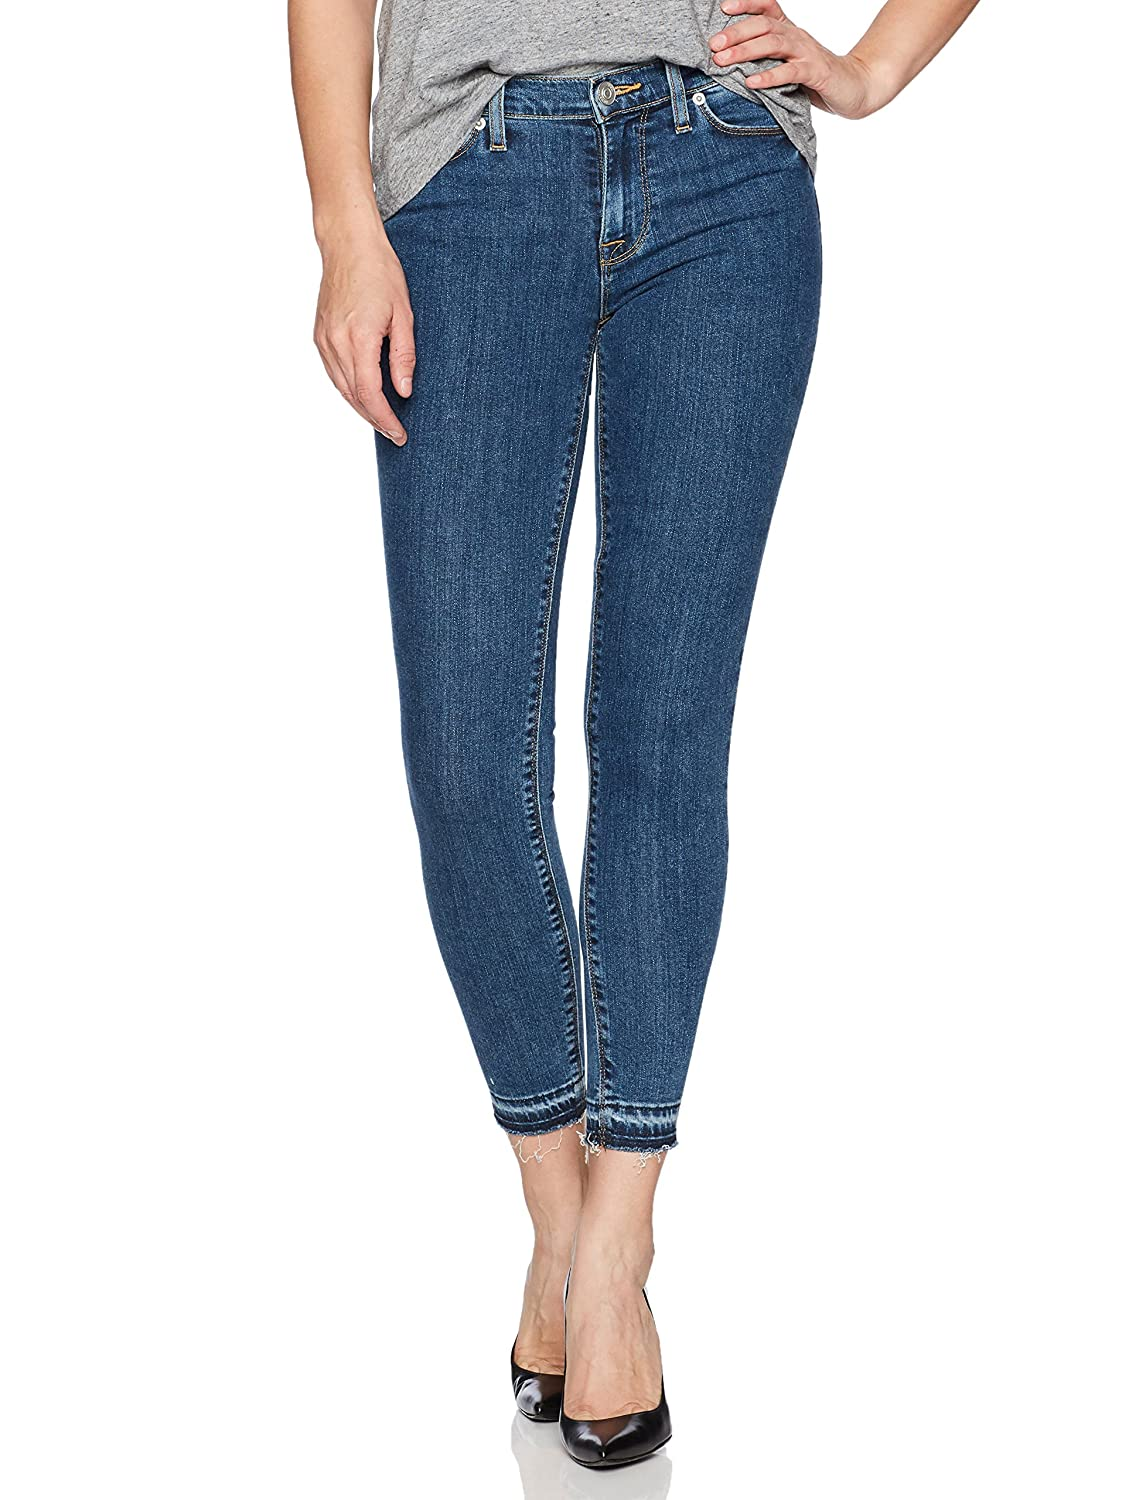 Hudson Jeans Womens Nico Midrise Ankle Skinny with Released Hem Jeans